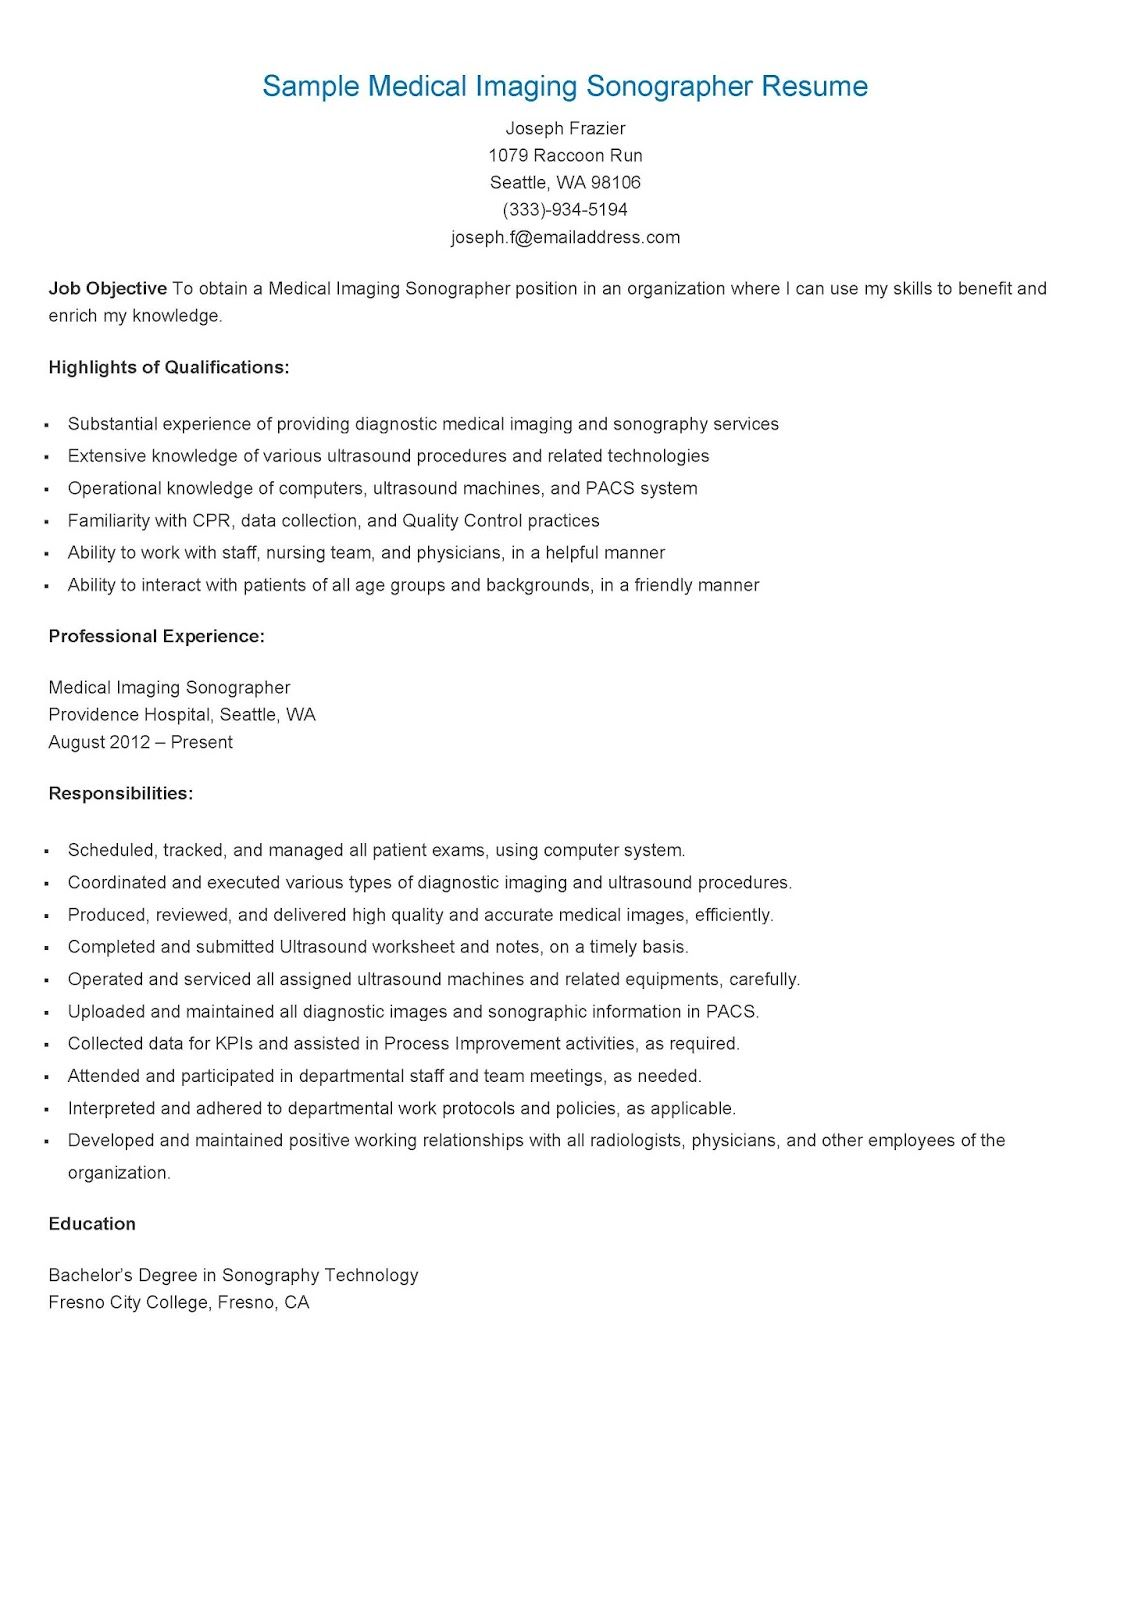 Sample Medical Imaging Sonographer Resume Resume Samples